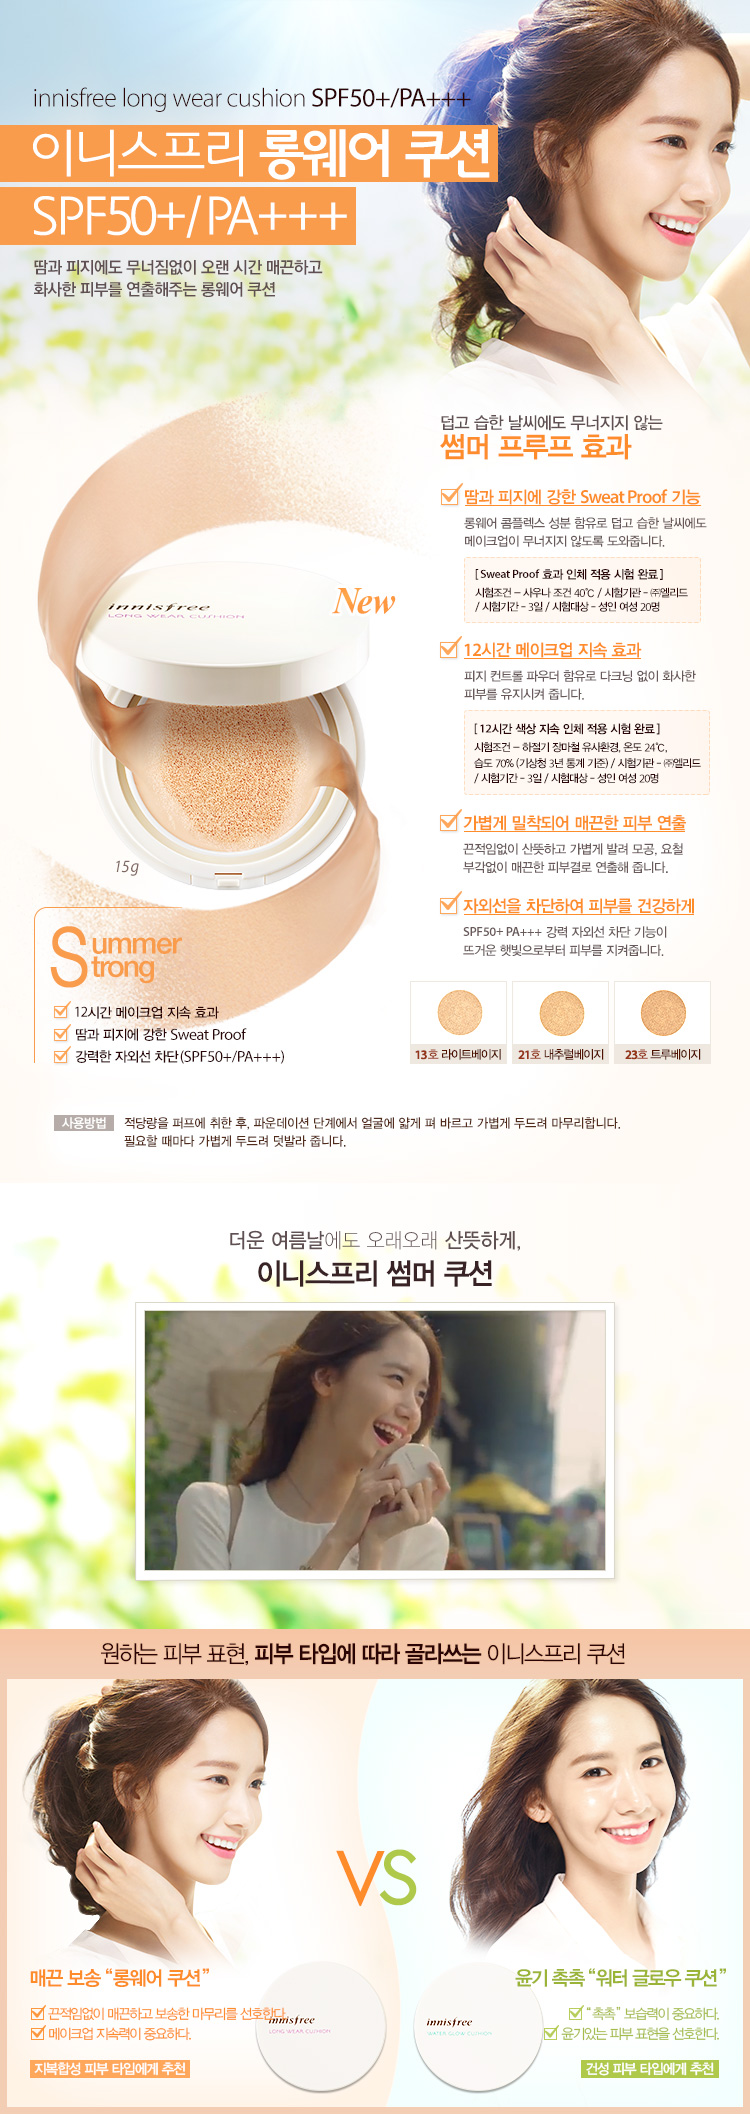 [140708] Yoona (SNSD) New Picture for Innisfree CF [6]